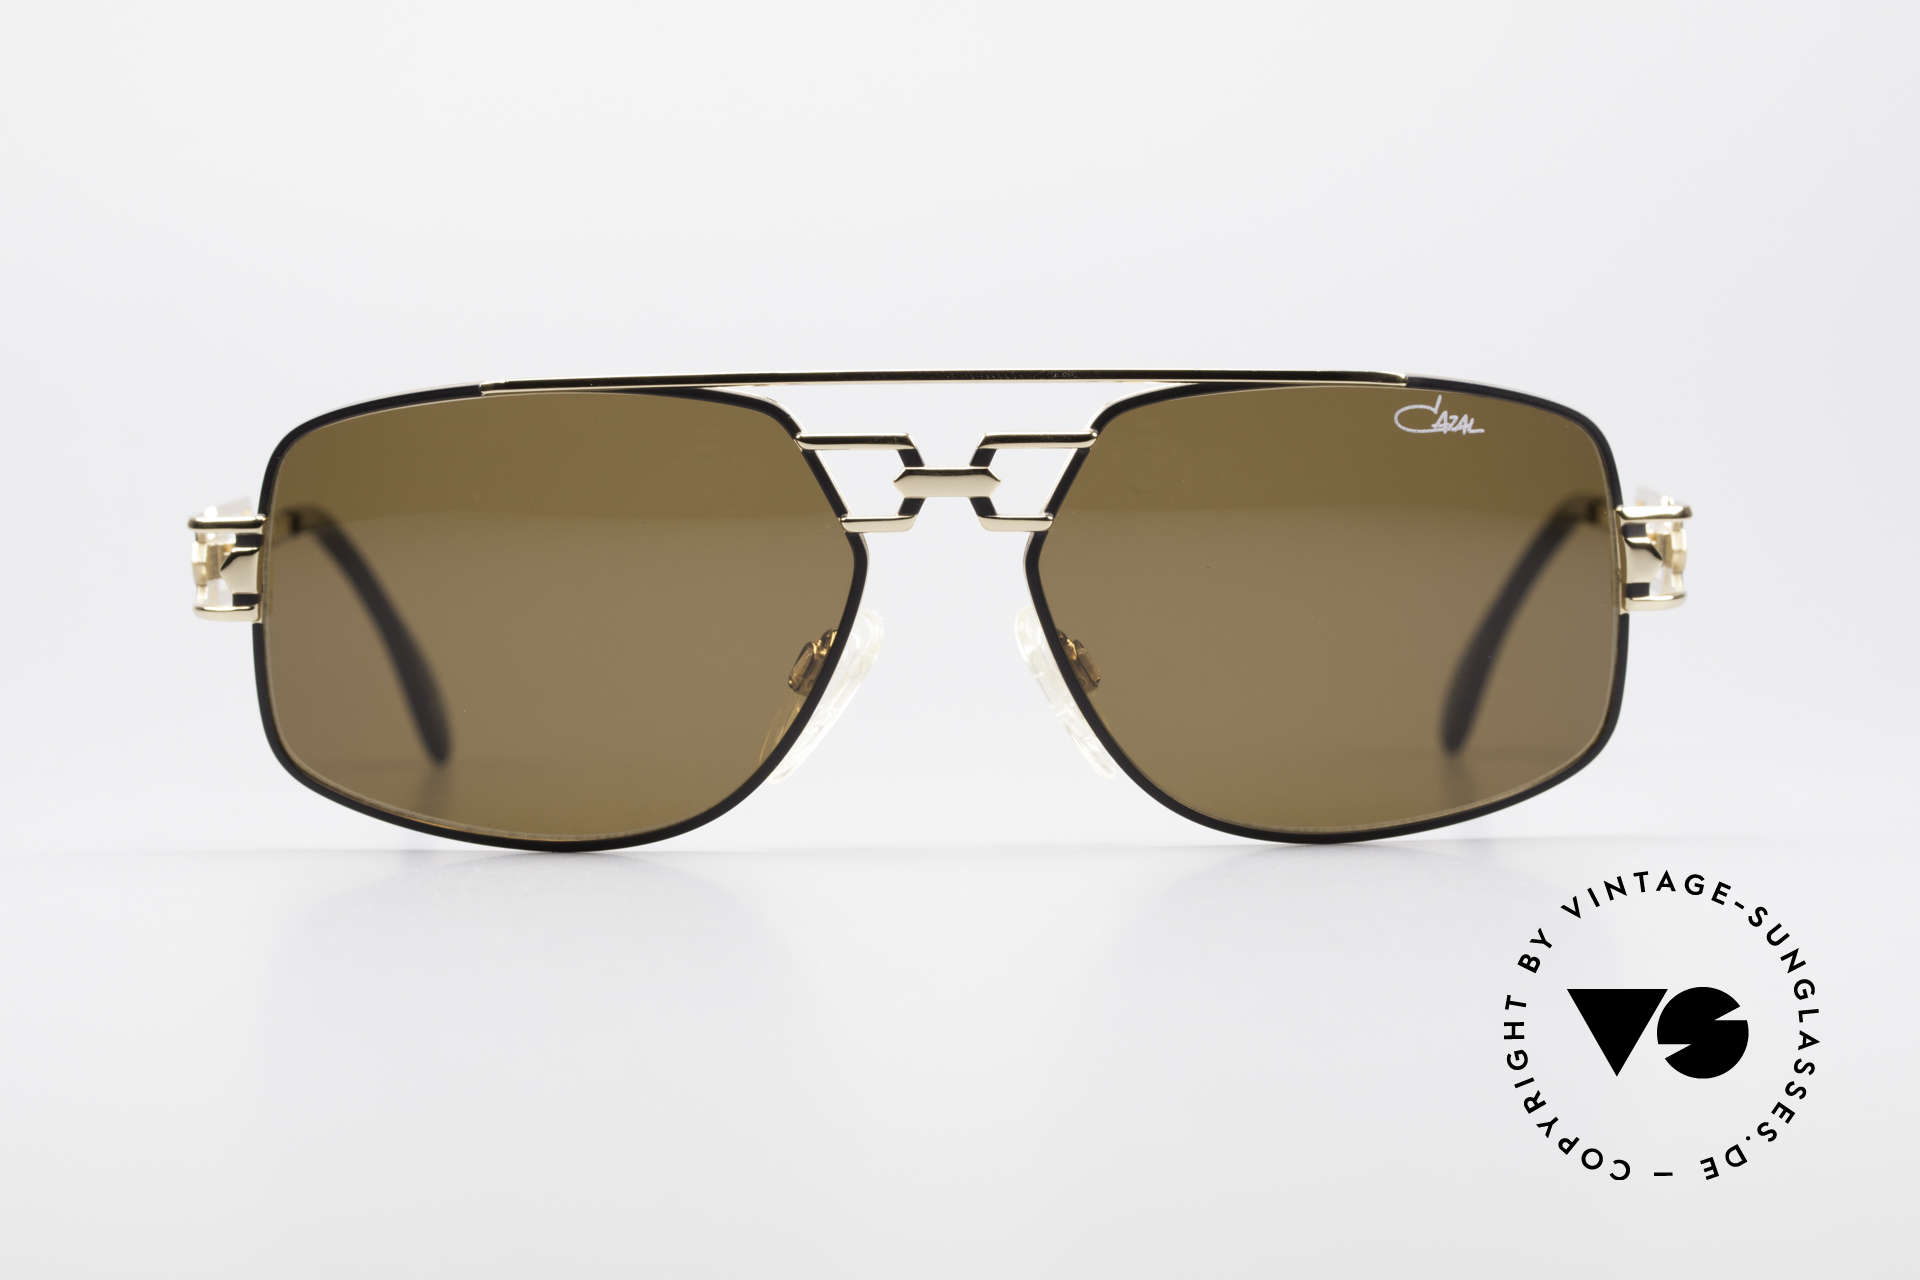 Cazal 972 True 90's No Retro Sunglasses, high-end quality 'made in GERMANY' (crafted in Passau), Made for Men and Women